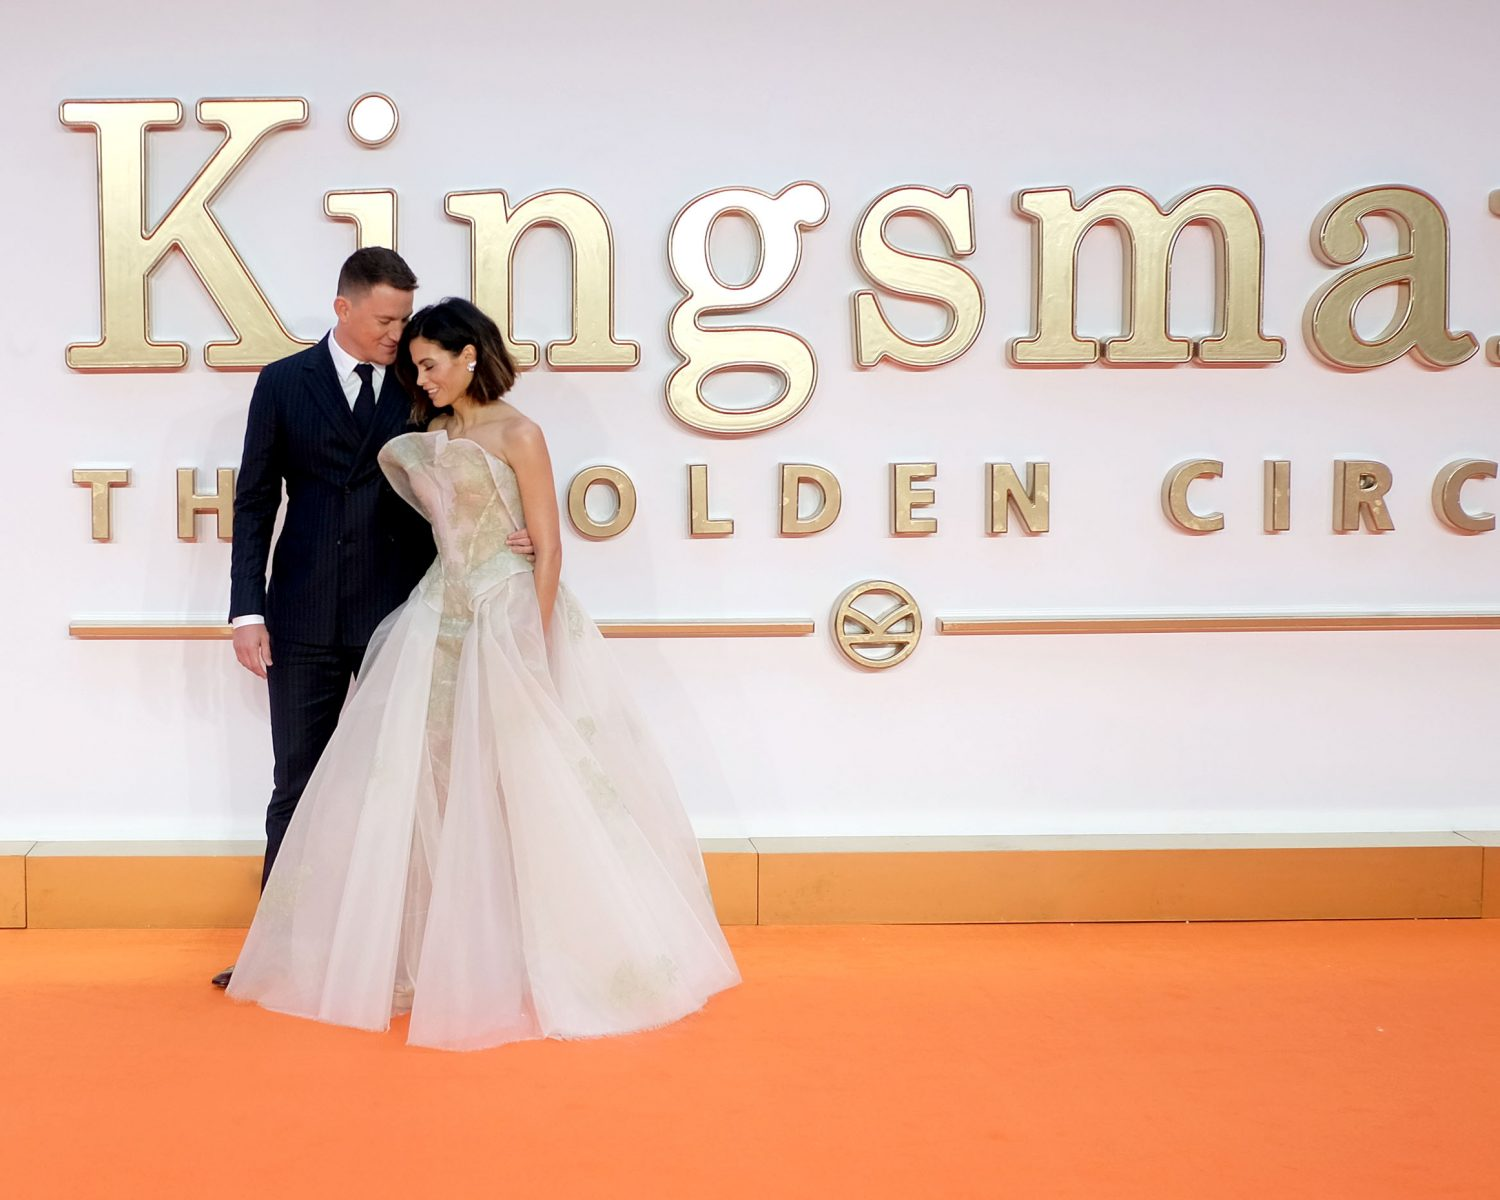 Jenna, Channing Tatum Dress Like They\'re Walking Down the Aisle